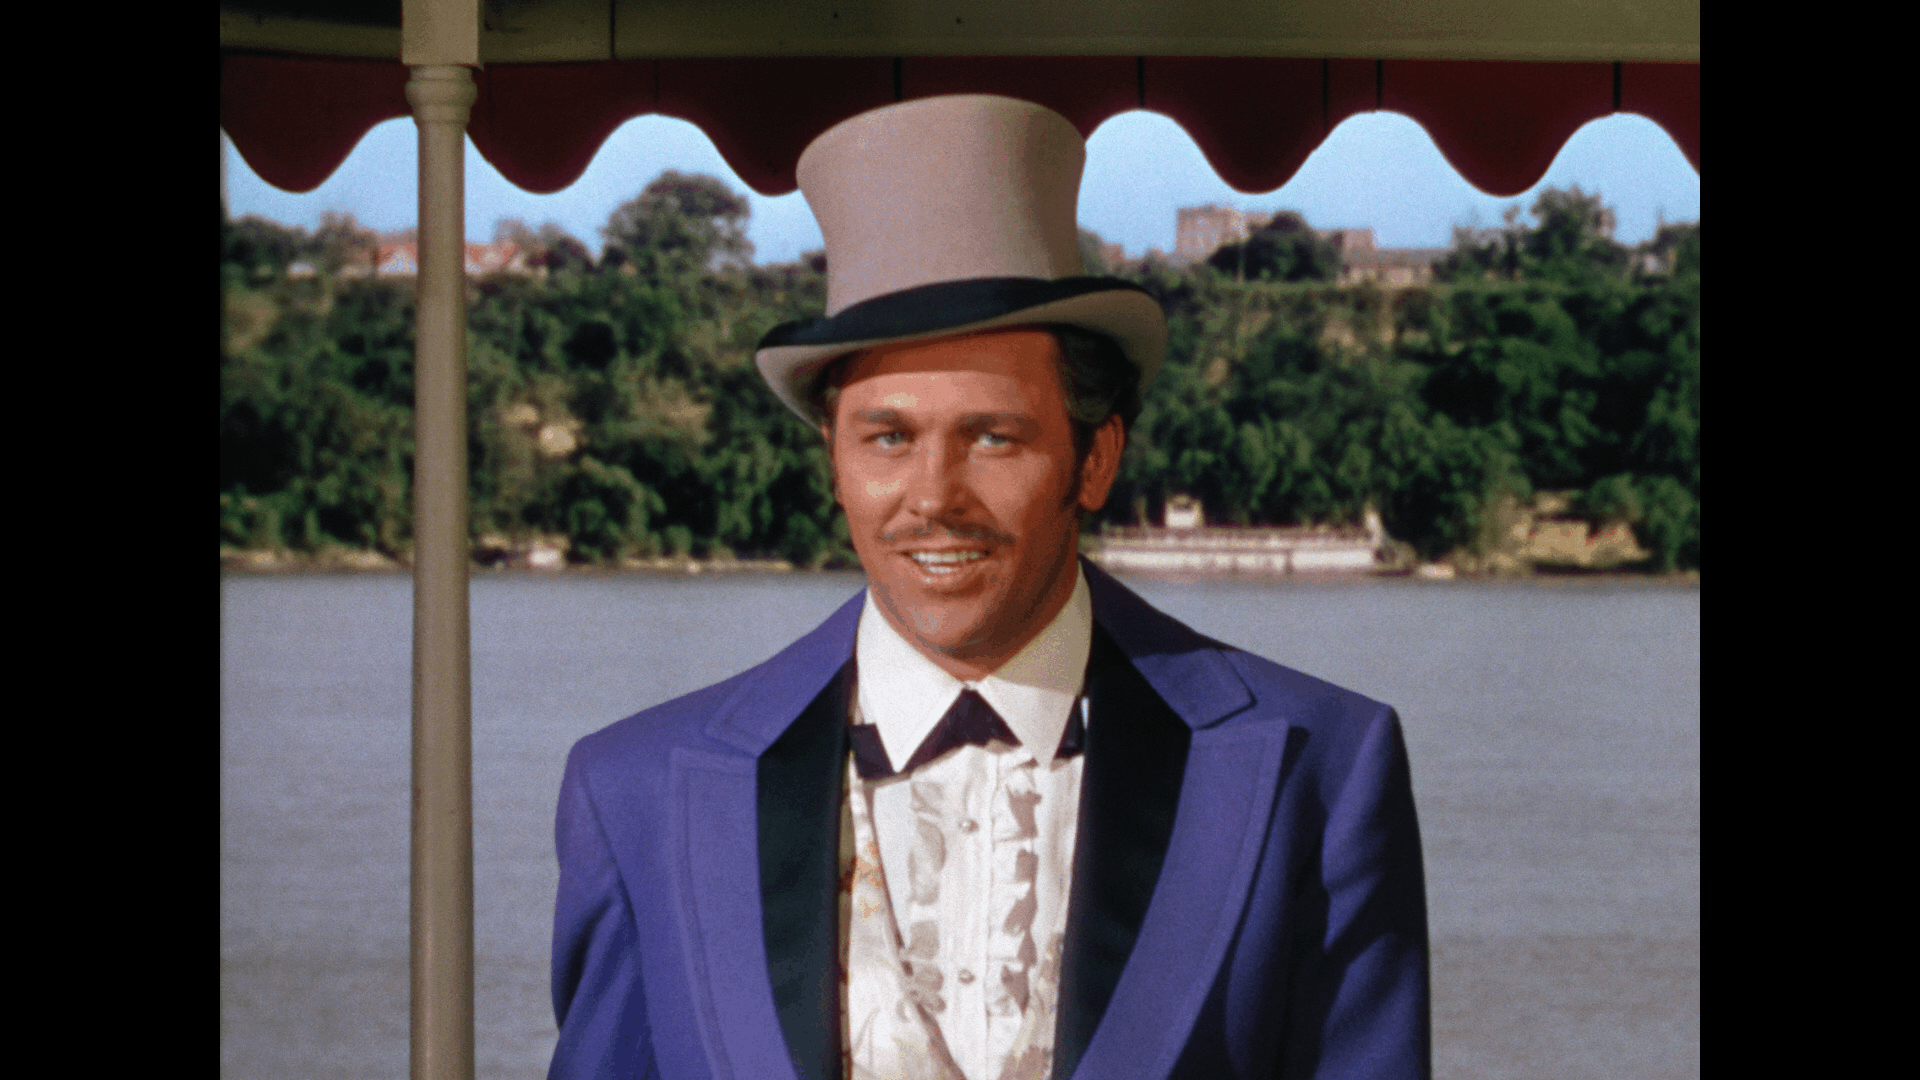 Show Boat (1951) [Warner Archive Blu-ray review] 10